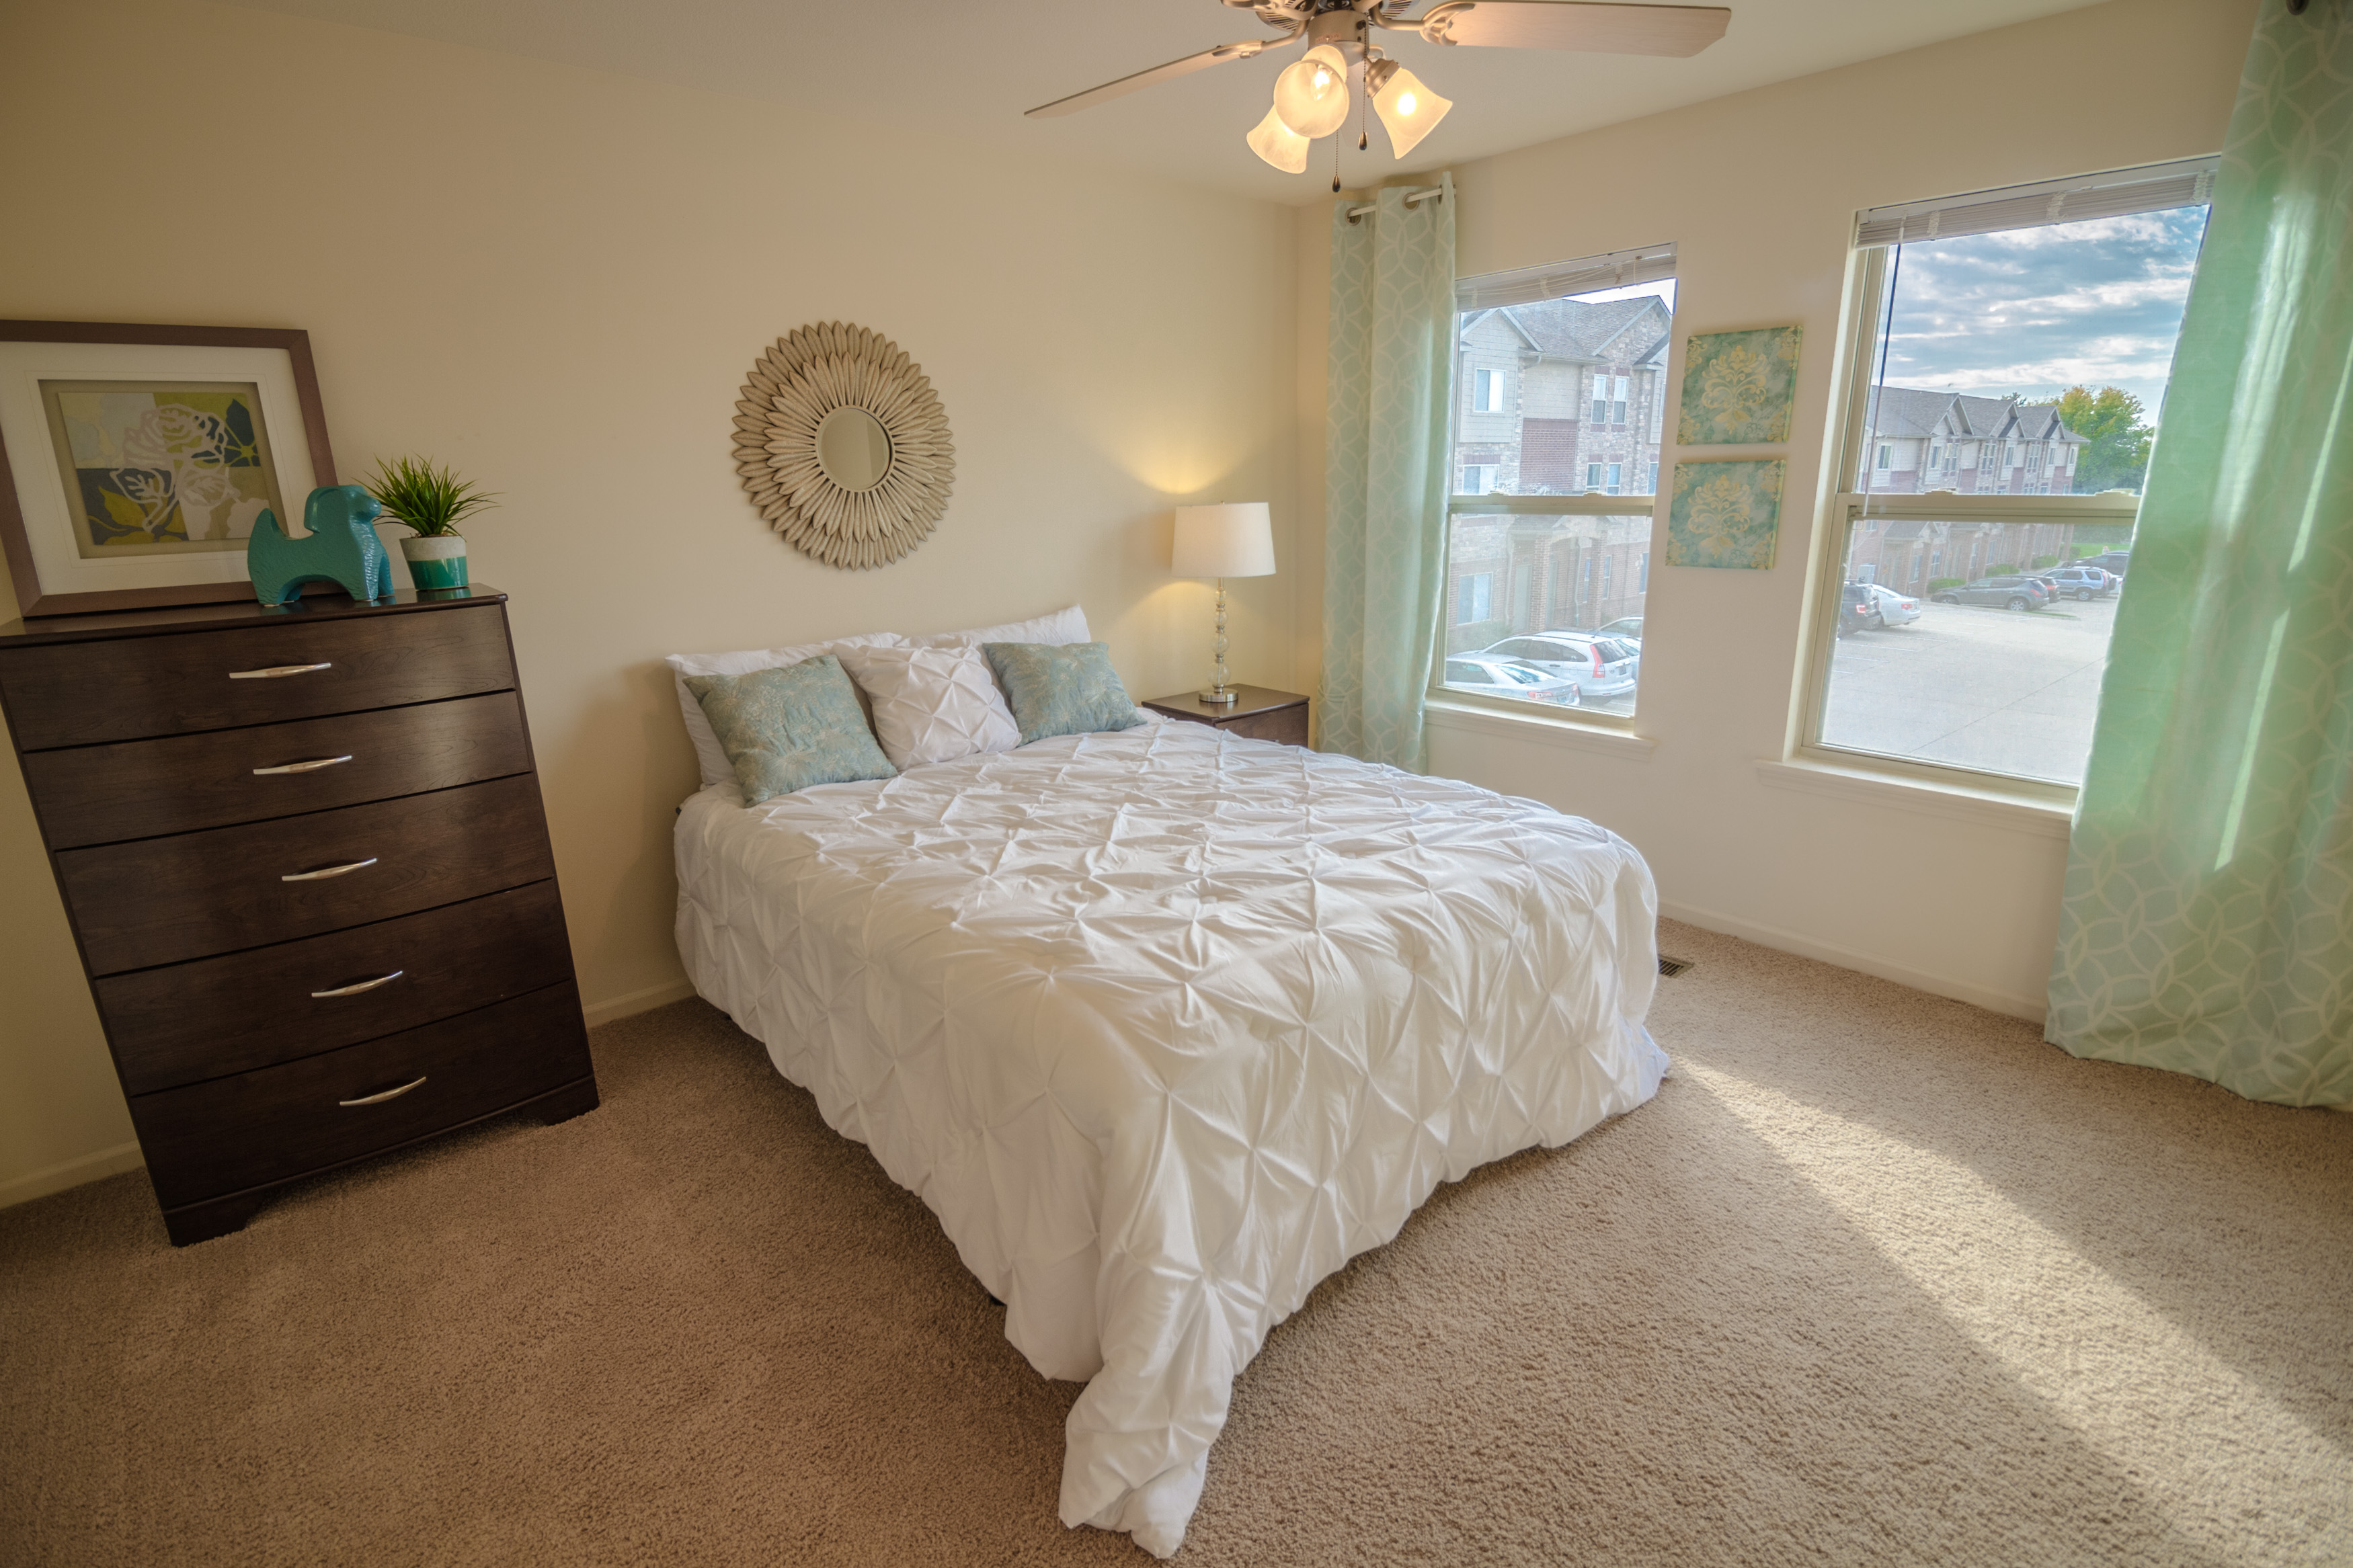 Townhomes columbia mo 4 bedroom the pointe rock quarry - 1 bedroom apartments columbia mo ...